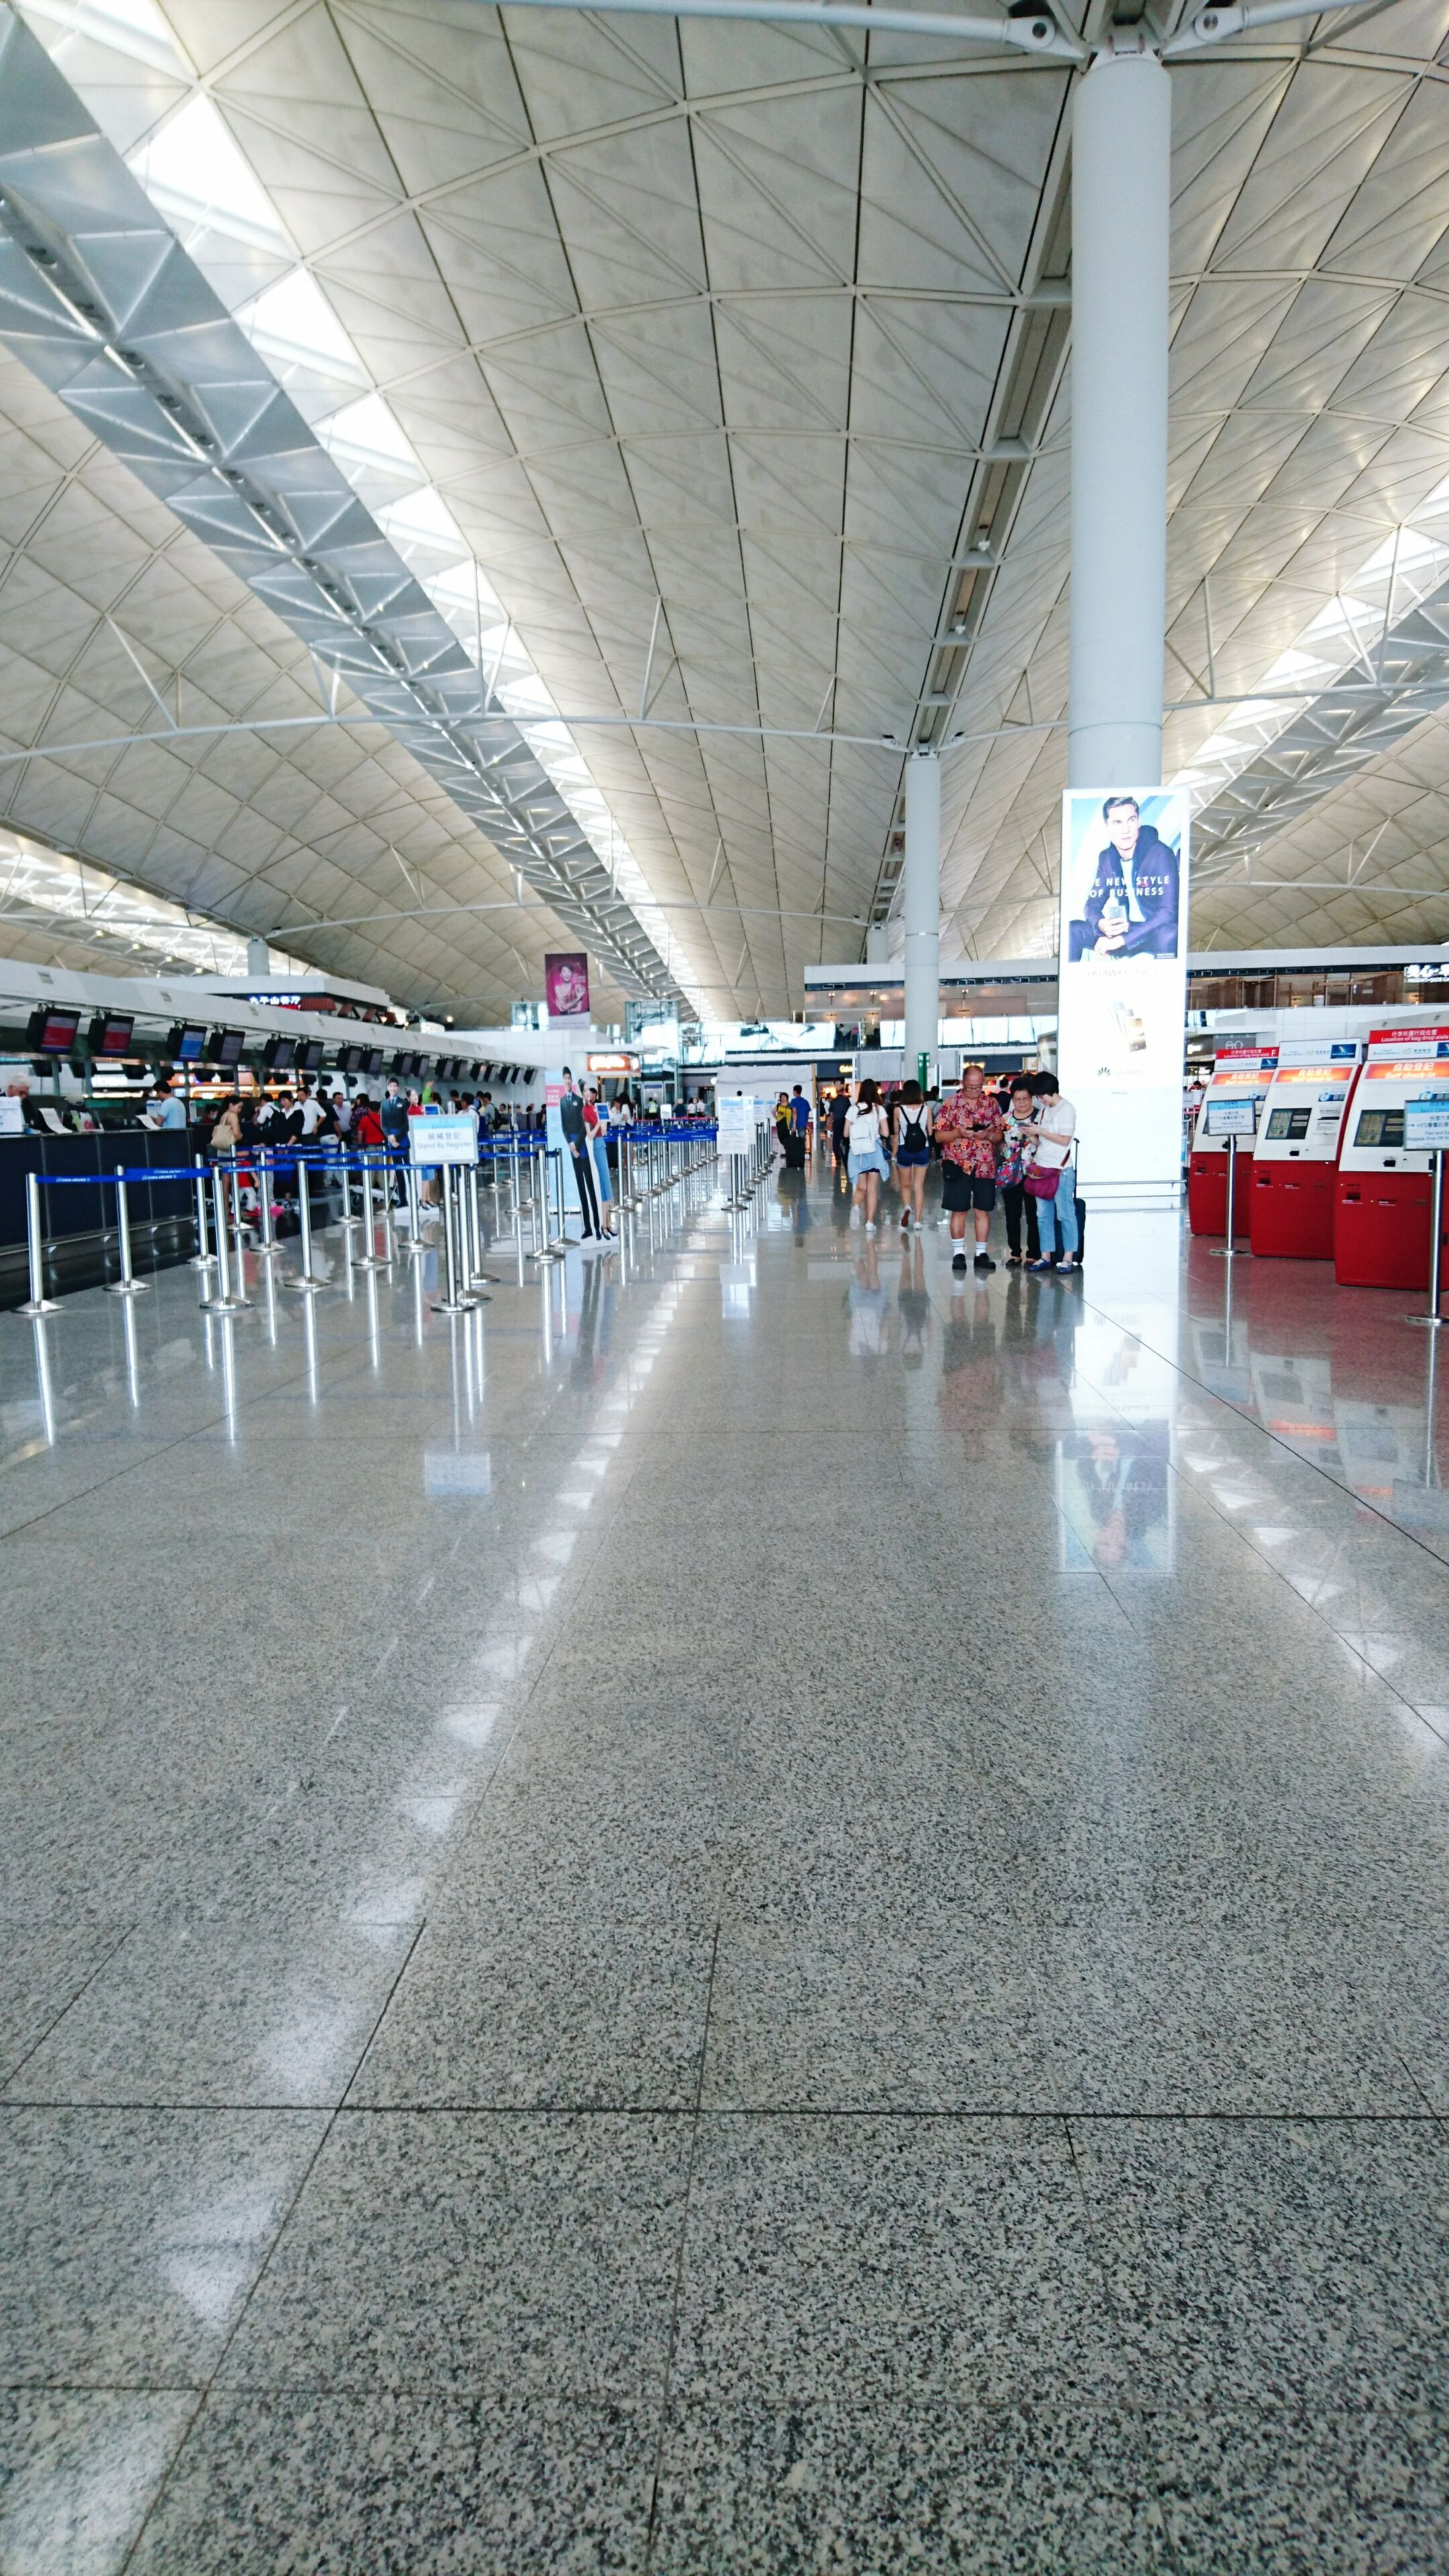 large group of people, transportation, built structure, architecture, indoors, architectural column, in a row, person, incidental people, travel, empty, men, flooring, the way forward, ceiling, city life, day, tiled floor, airport